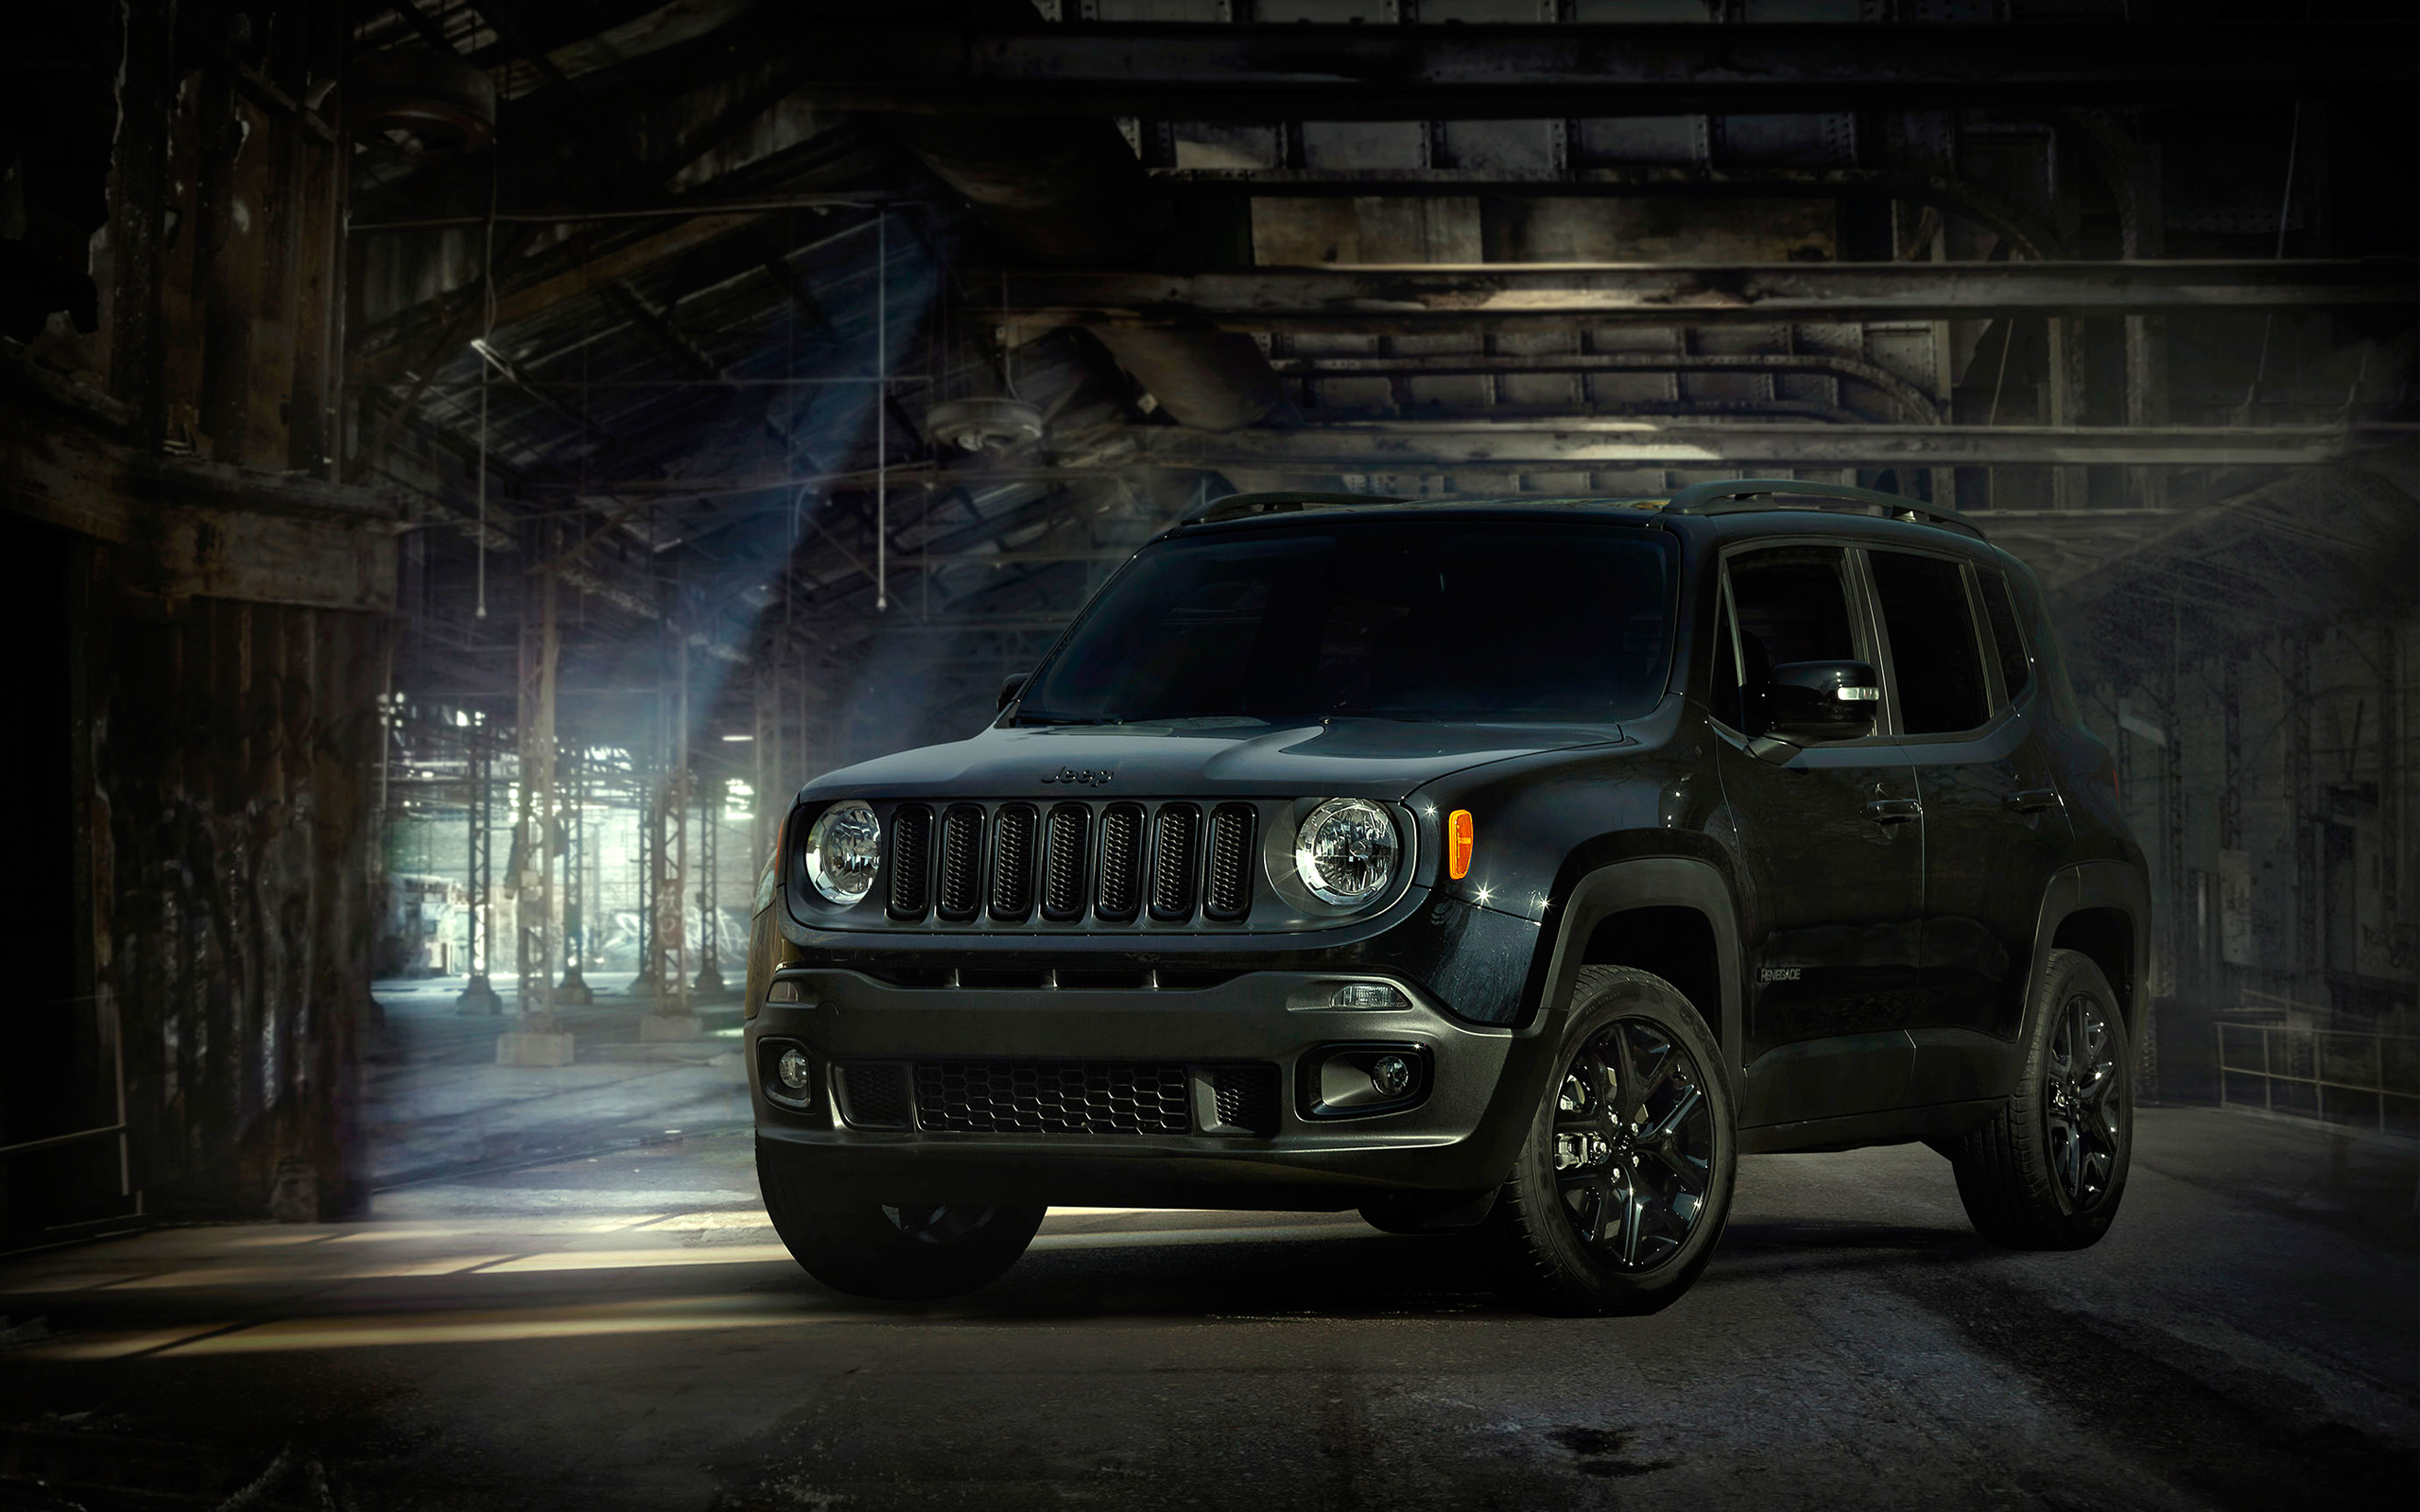 2016 jeep renegade dawn of justice special edition wallpaper hd car wallpapers id 6202. Black Bedroom Furniture Sets. Home Design Ideas